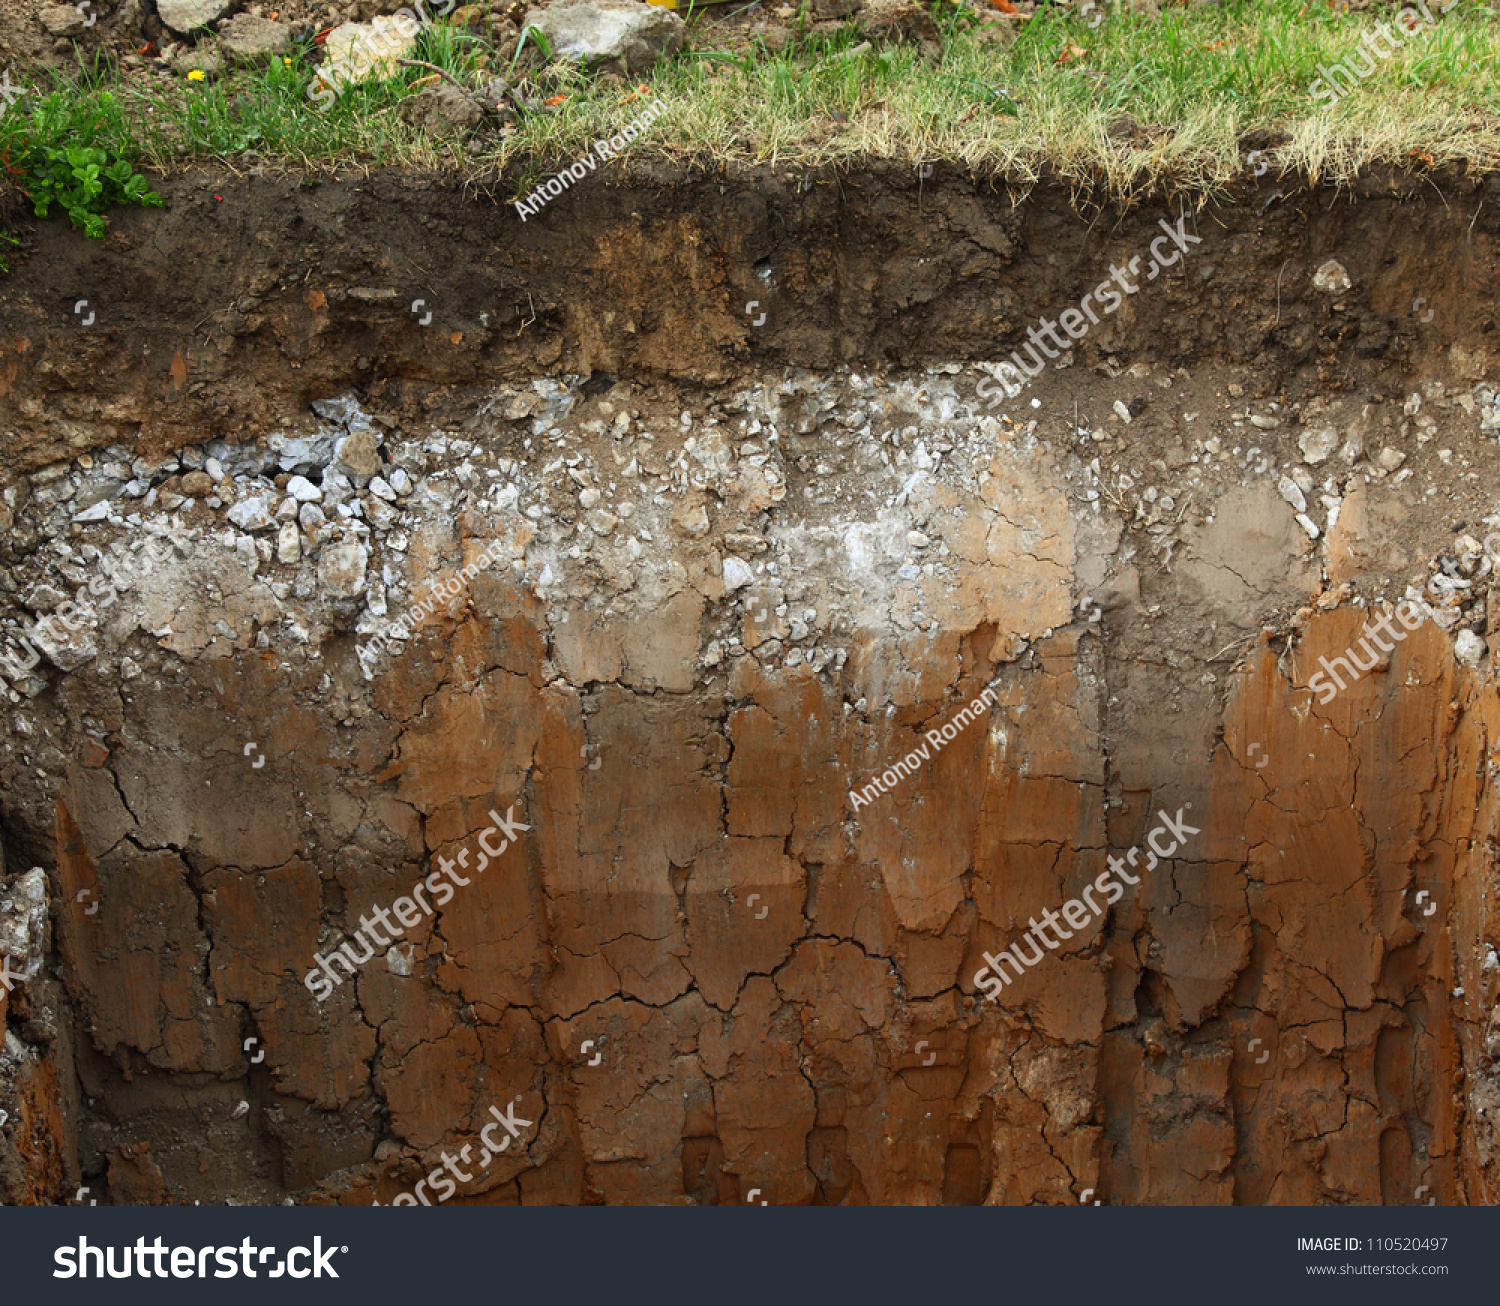 Image underground soil layers stock photo 110520497 for What are the different layers of soil